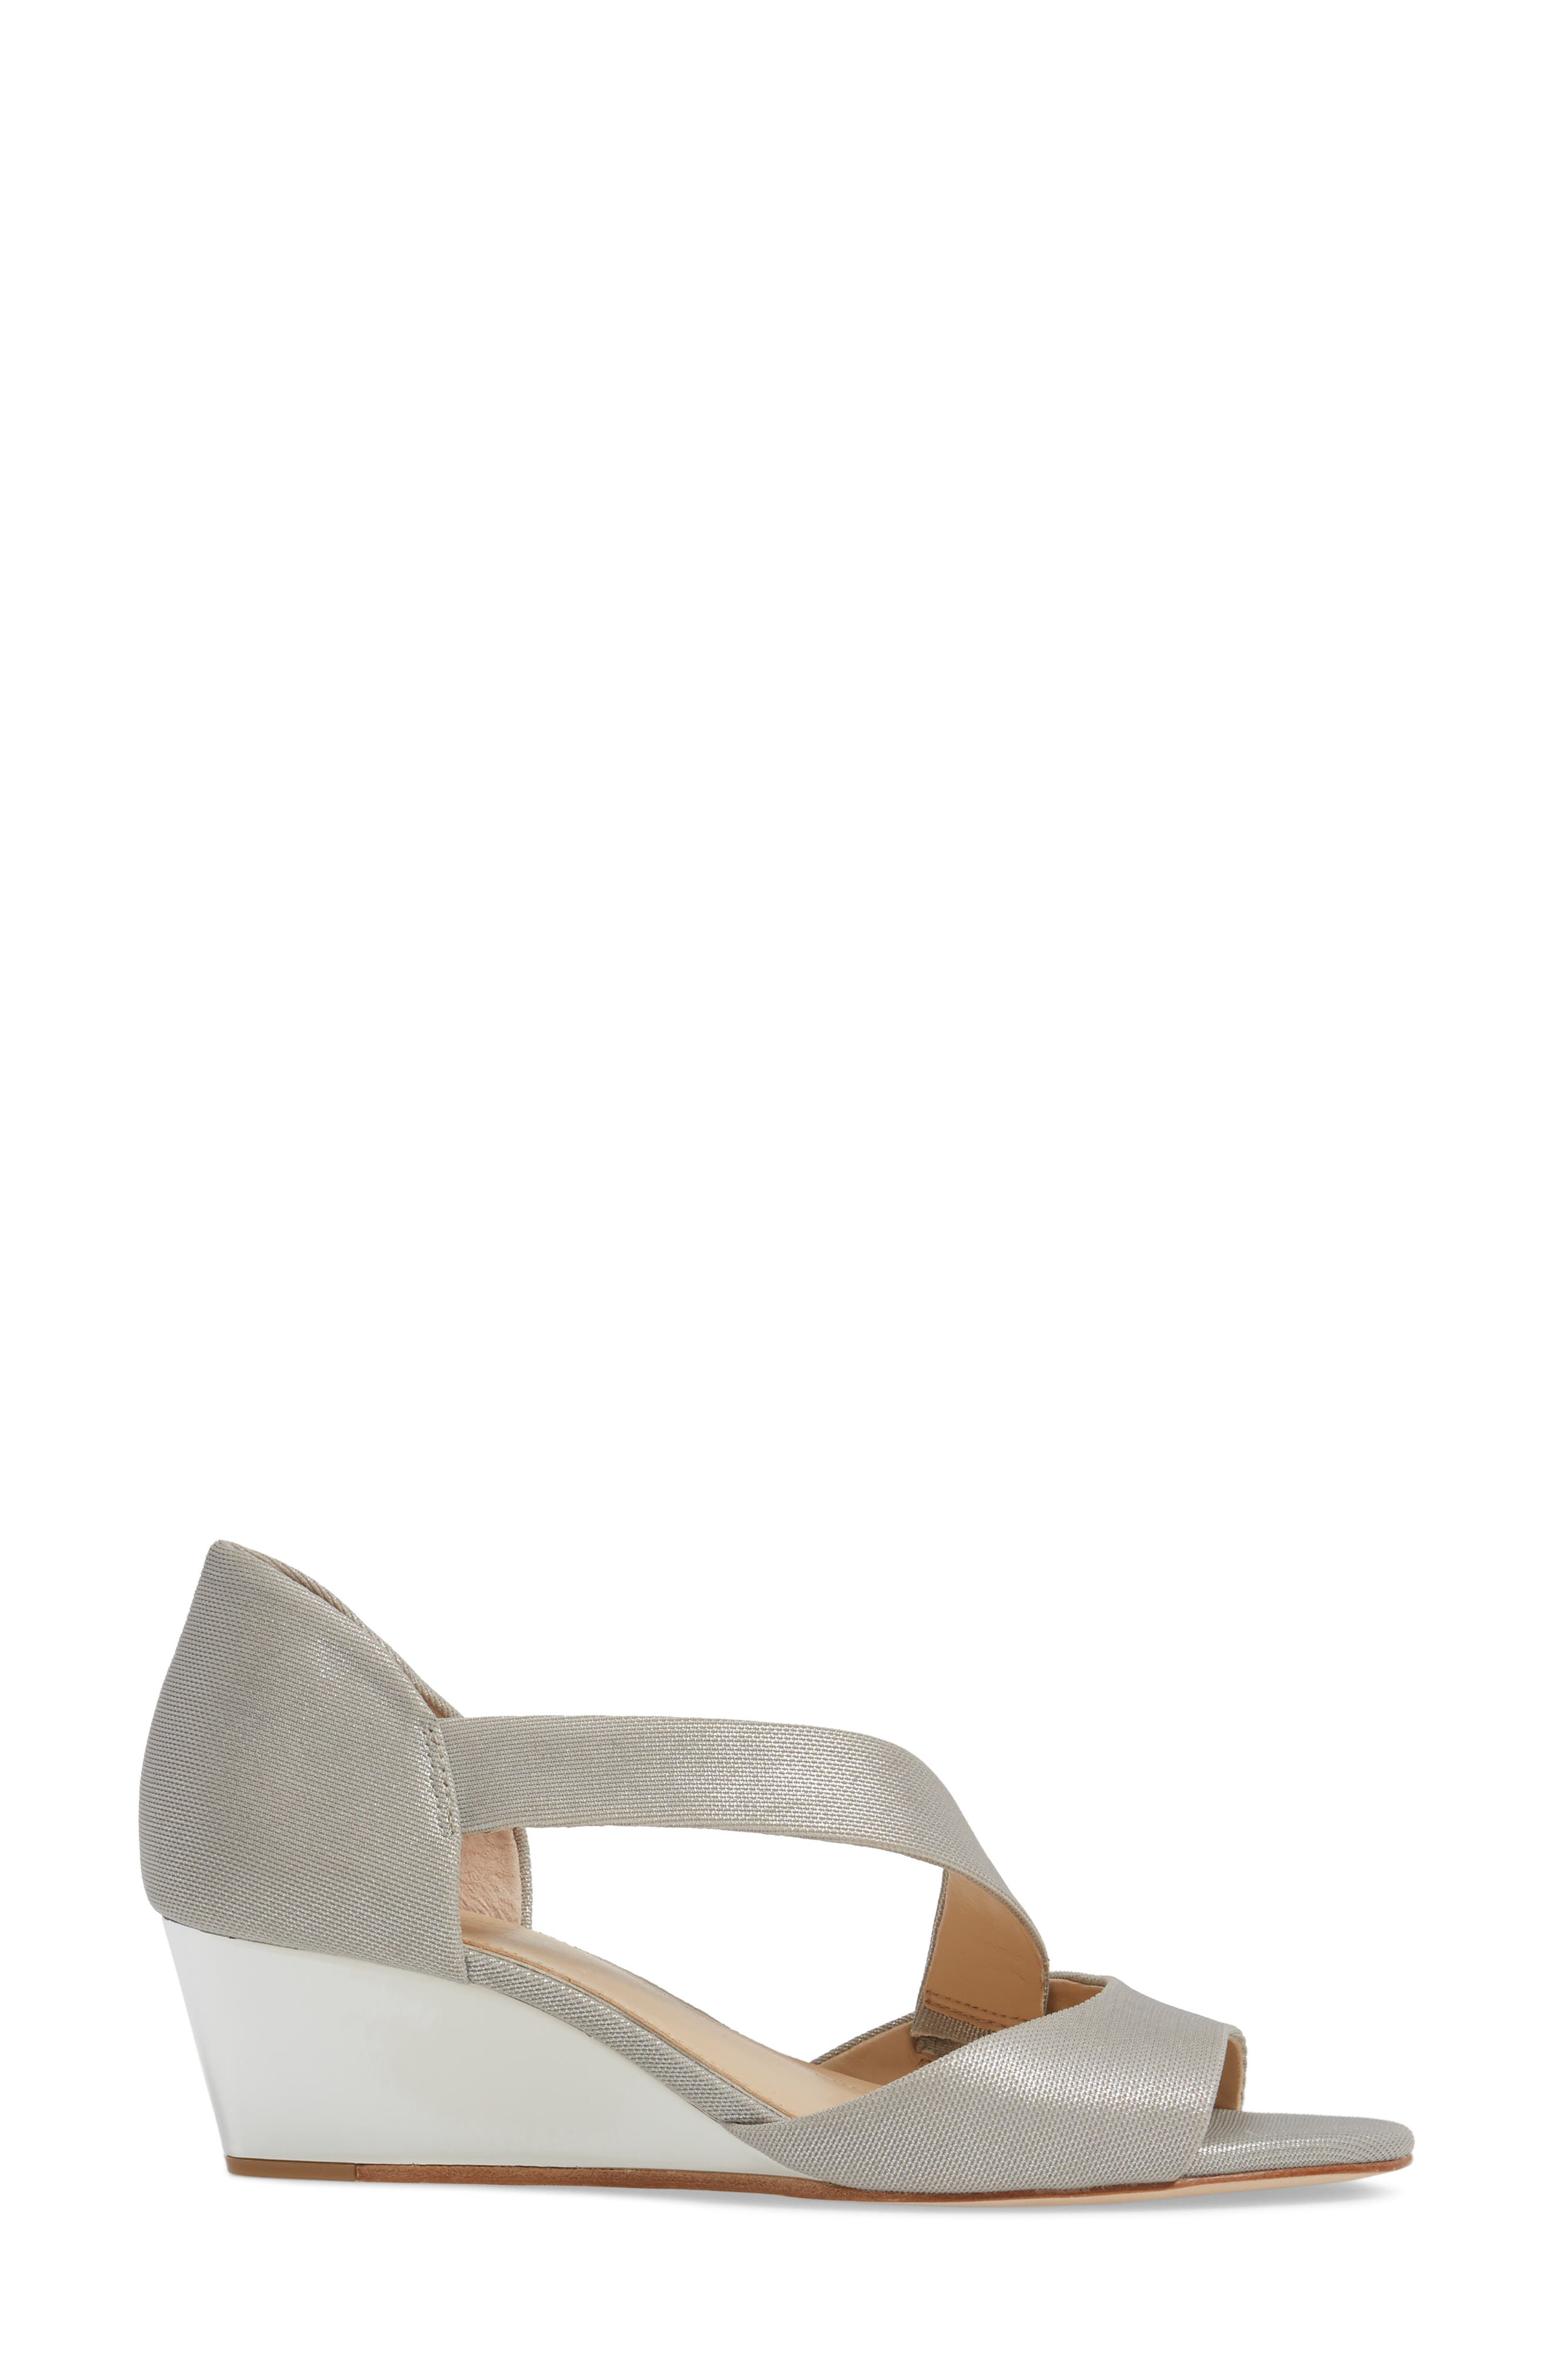 Alternate Image 3  - Imagine by Vince Camuto Jefre Wedgee Sandal (Women)